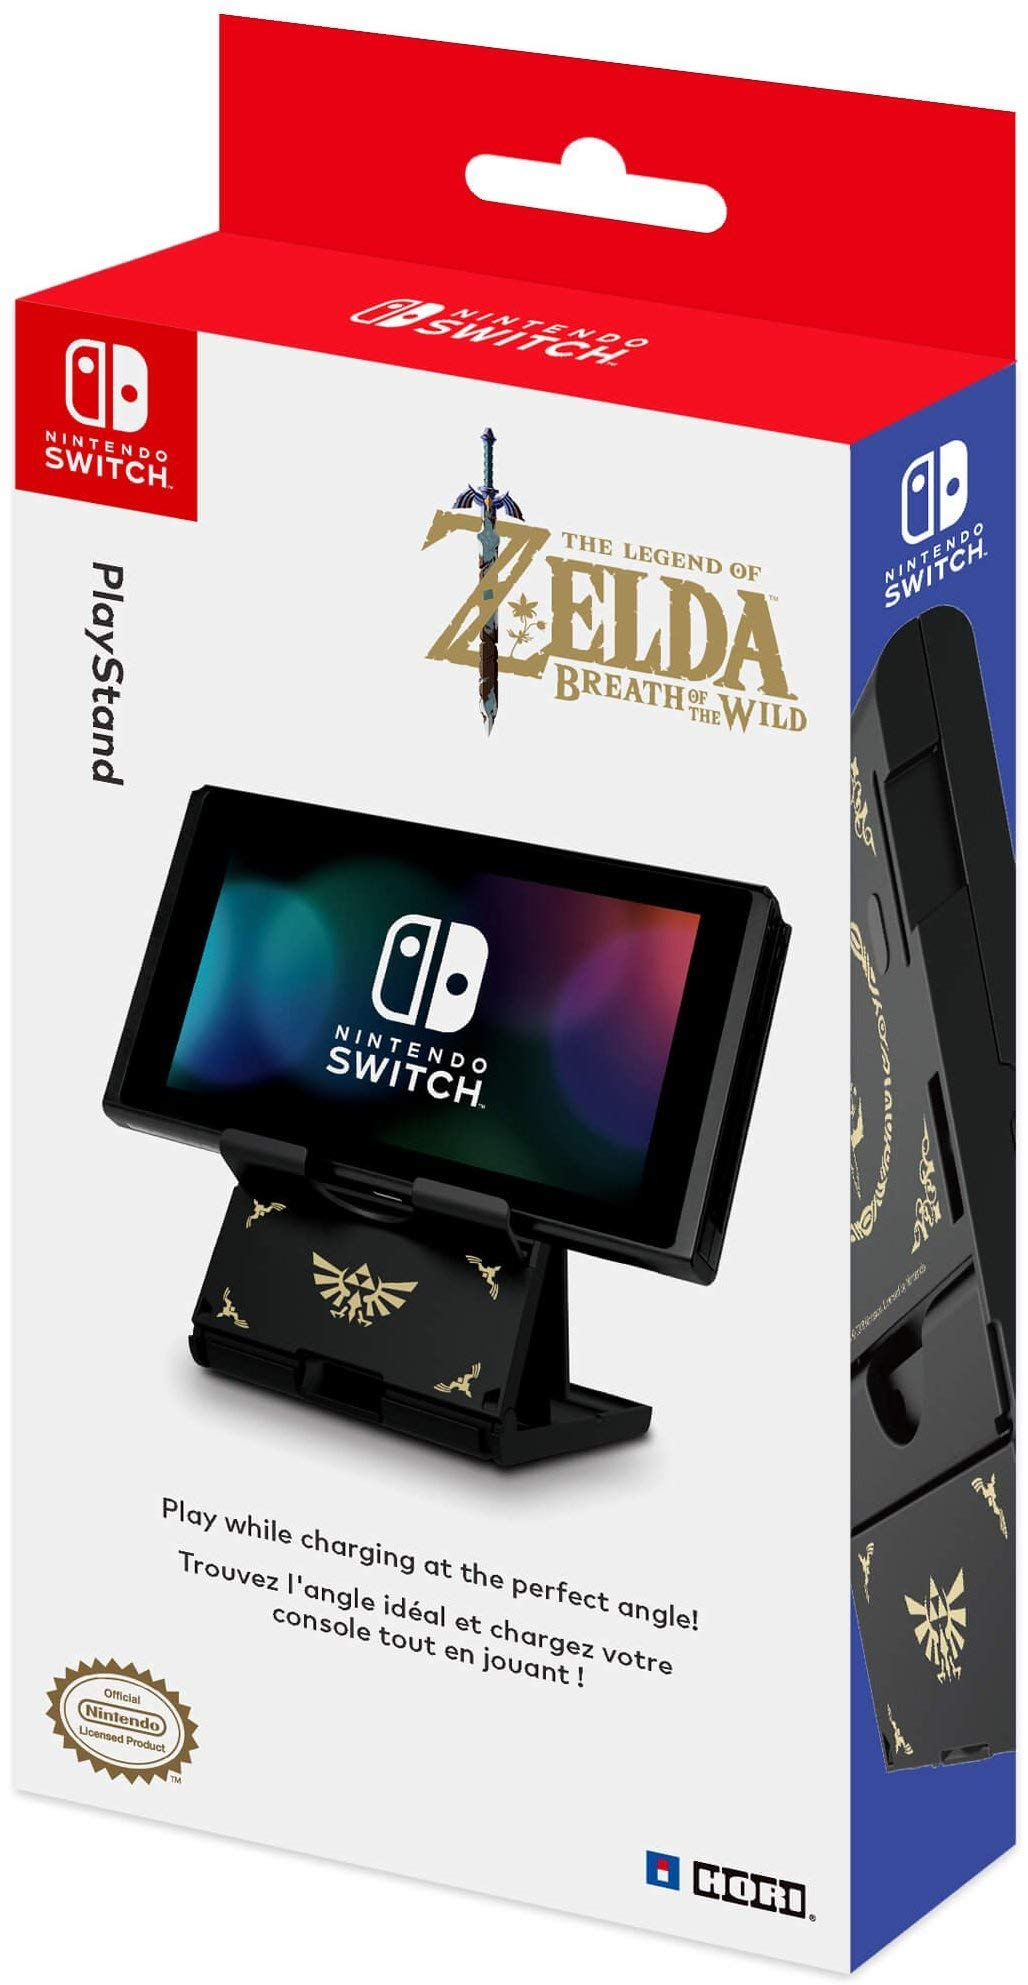 HORI Compact PlayStand - Zelda Edition, Officially Licensed by Nintendo - Nintendo Switch by Hori